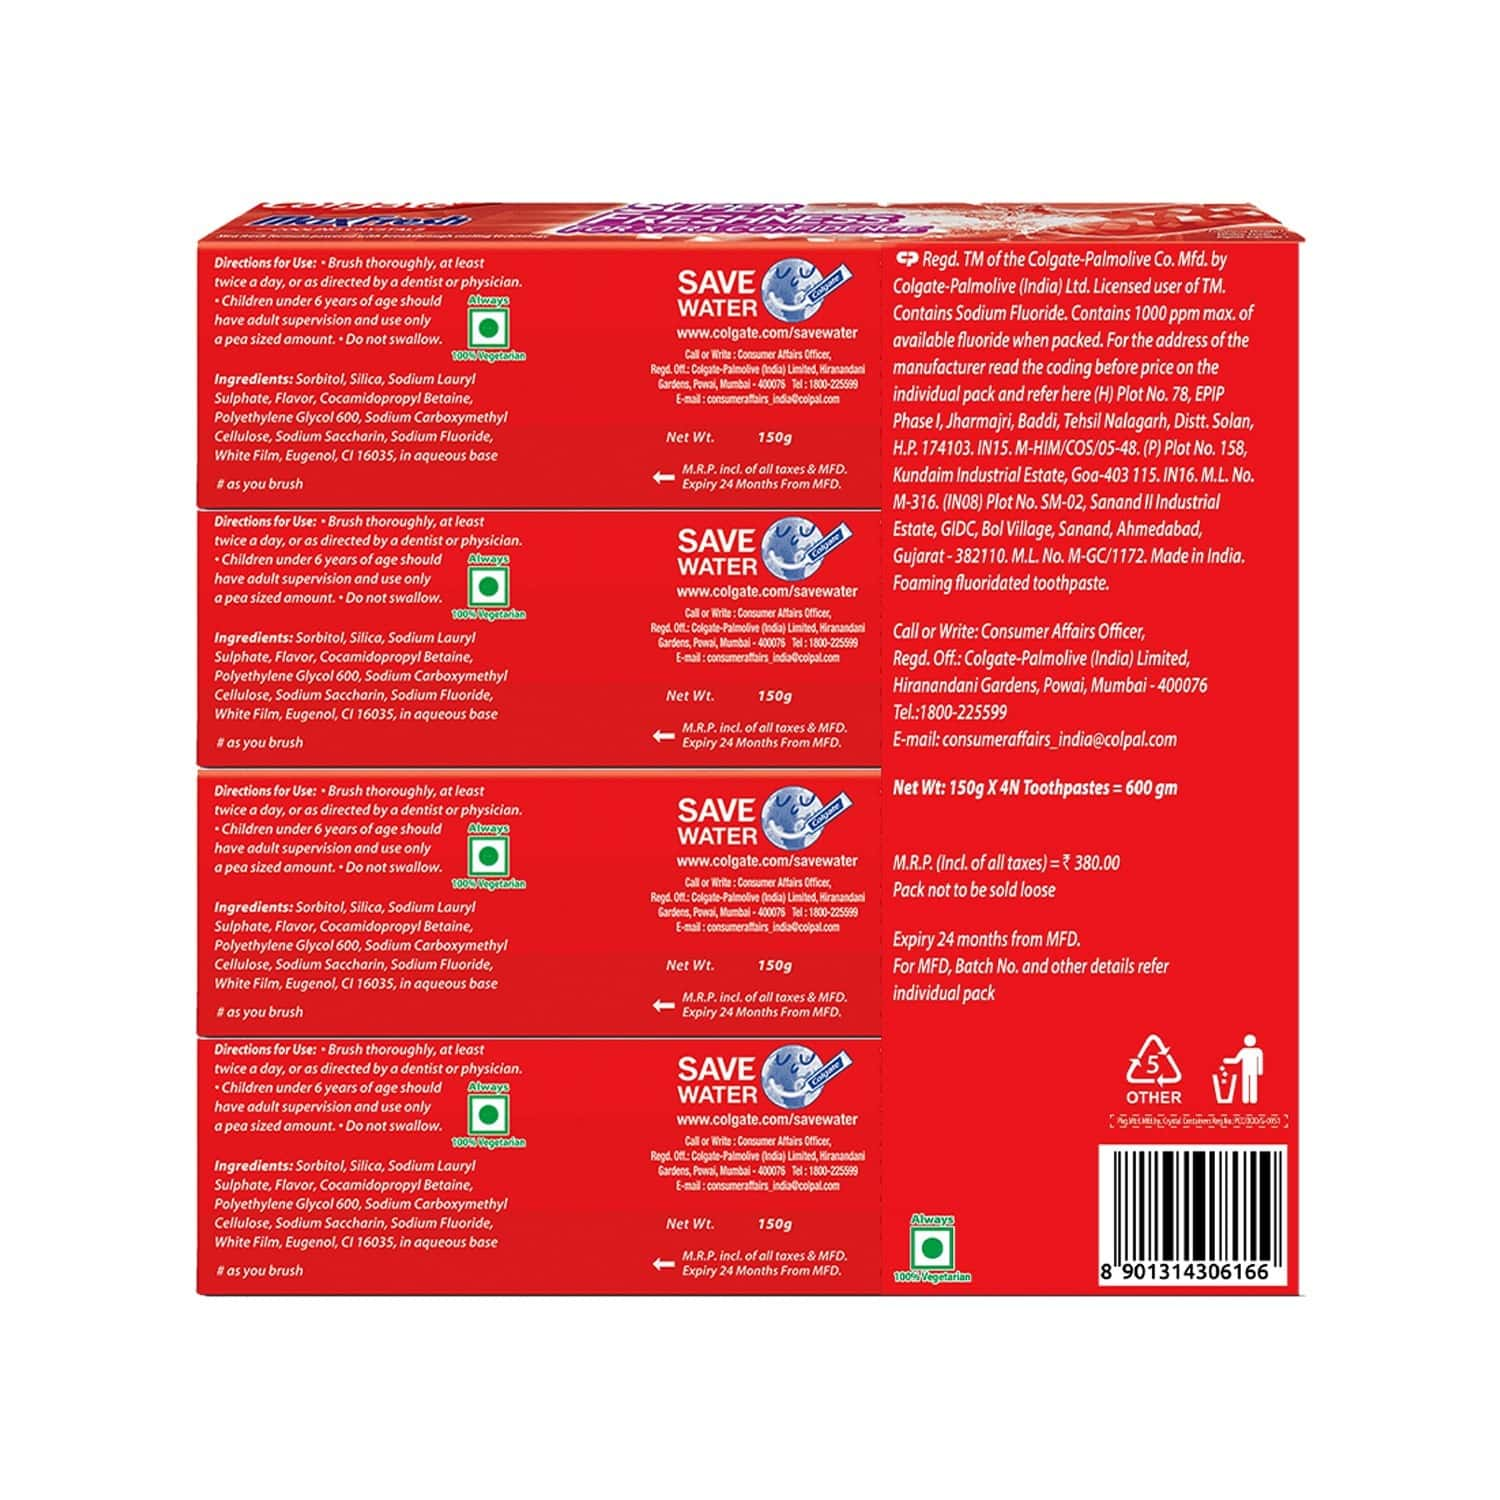 Colgate Maxfresh Toothpaste, Red Gel Paste With Menthol For Super Fresh Breath, 150g X 4 (spicy Fresh) - 650g